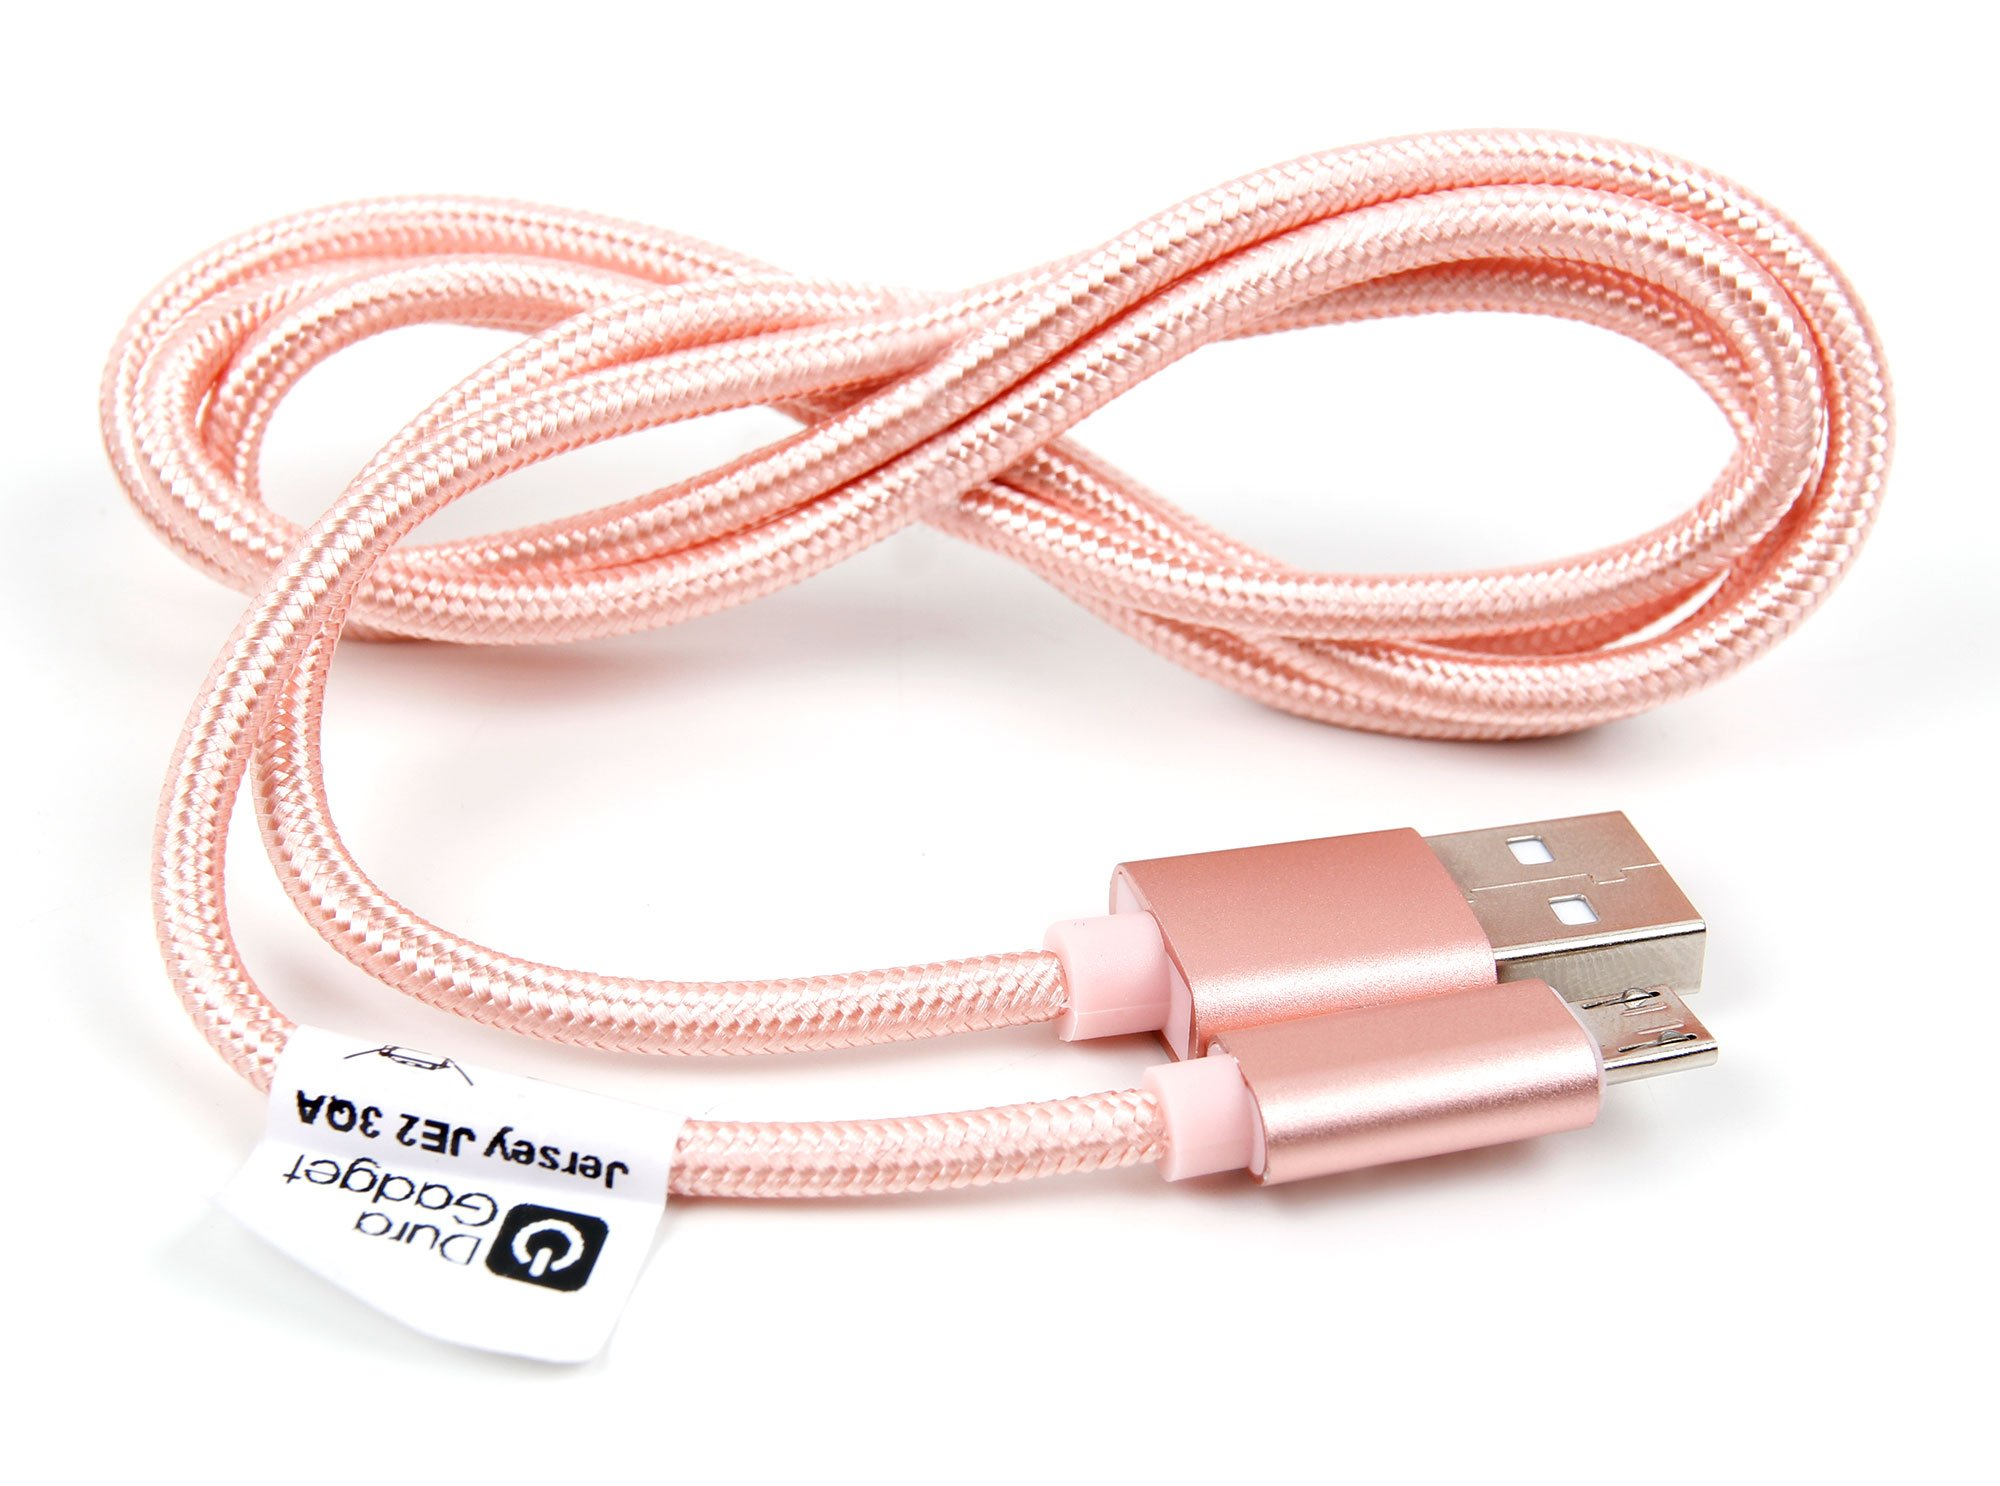 DURAGADGET Rose Gold Micro USB Data Sync Cable For Philips DVT 7000 Digital Recorder with 360° Recording